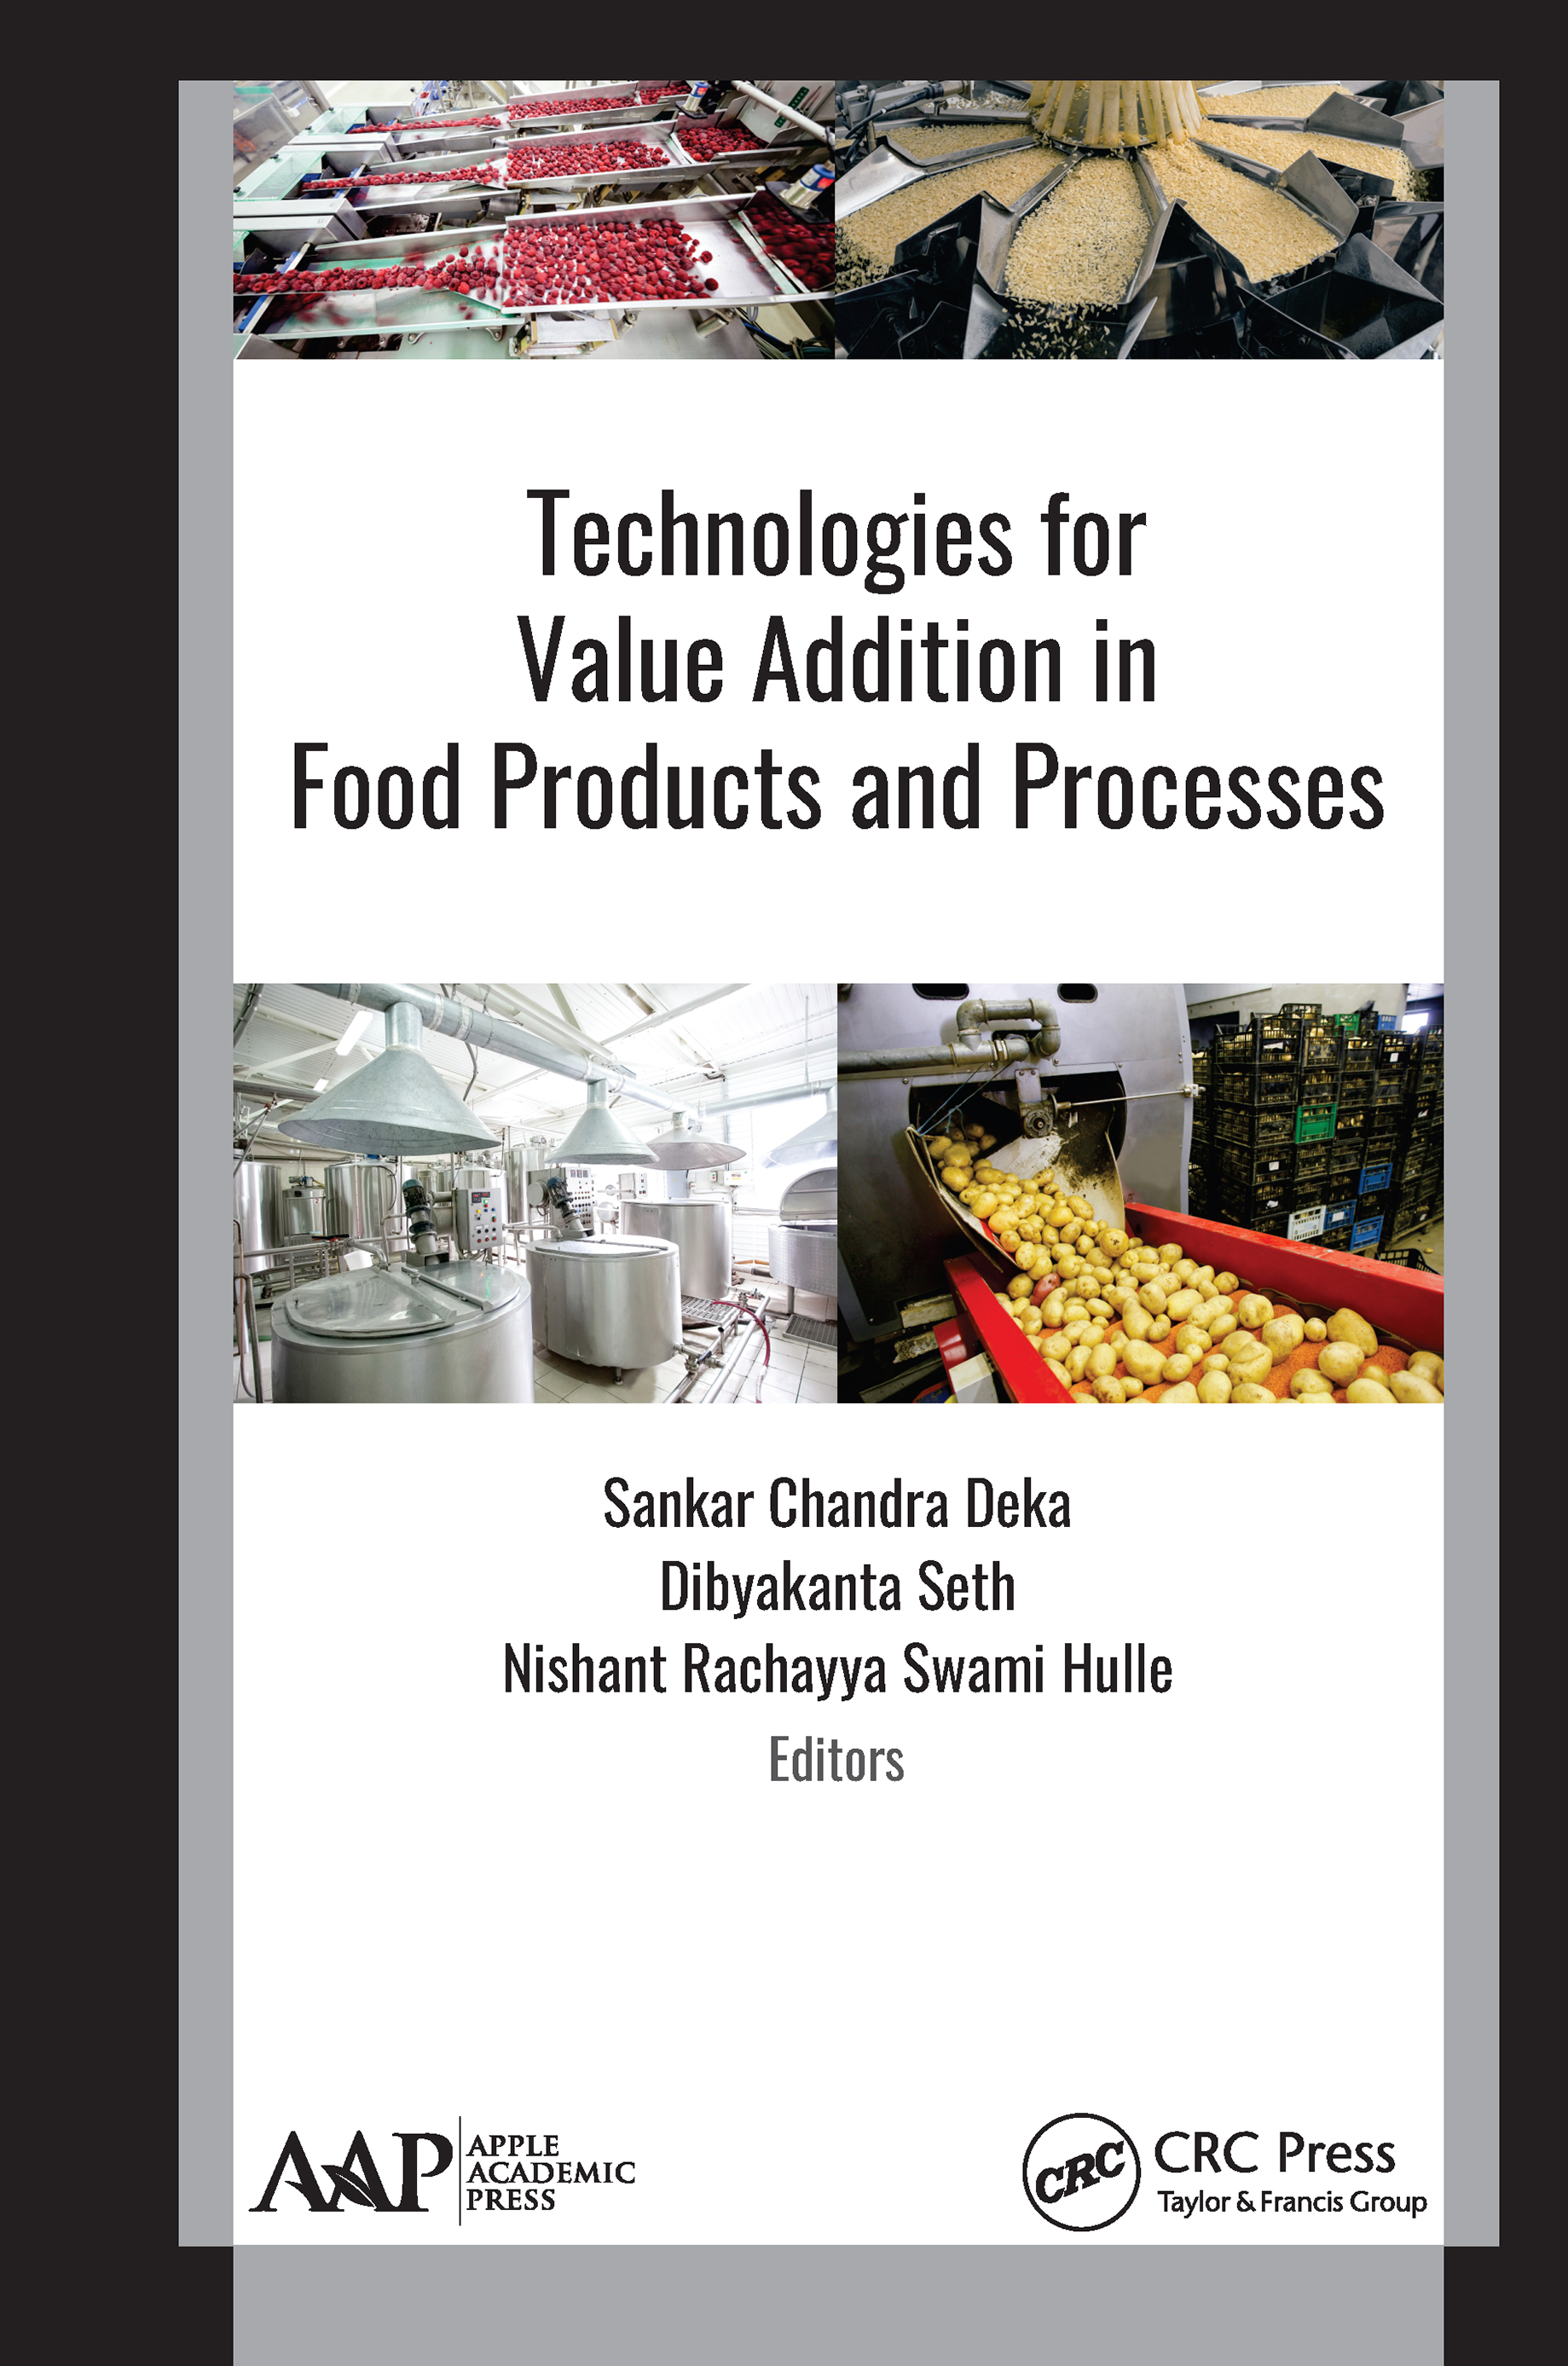 Technologies for Value Addition in Food Products and Processes book cover